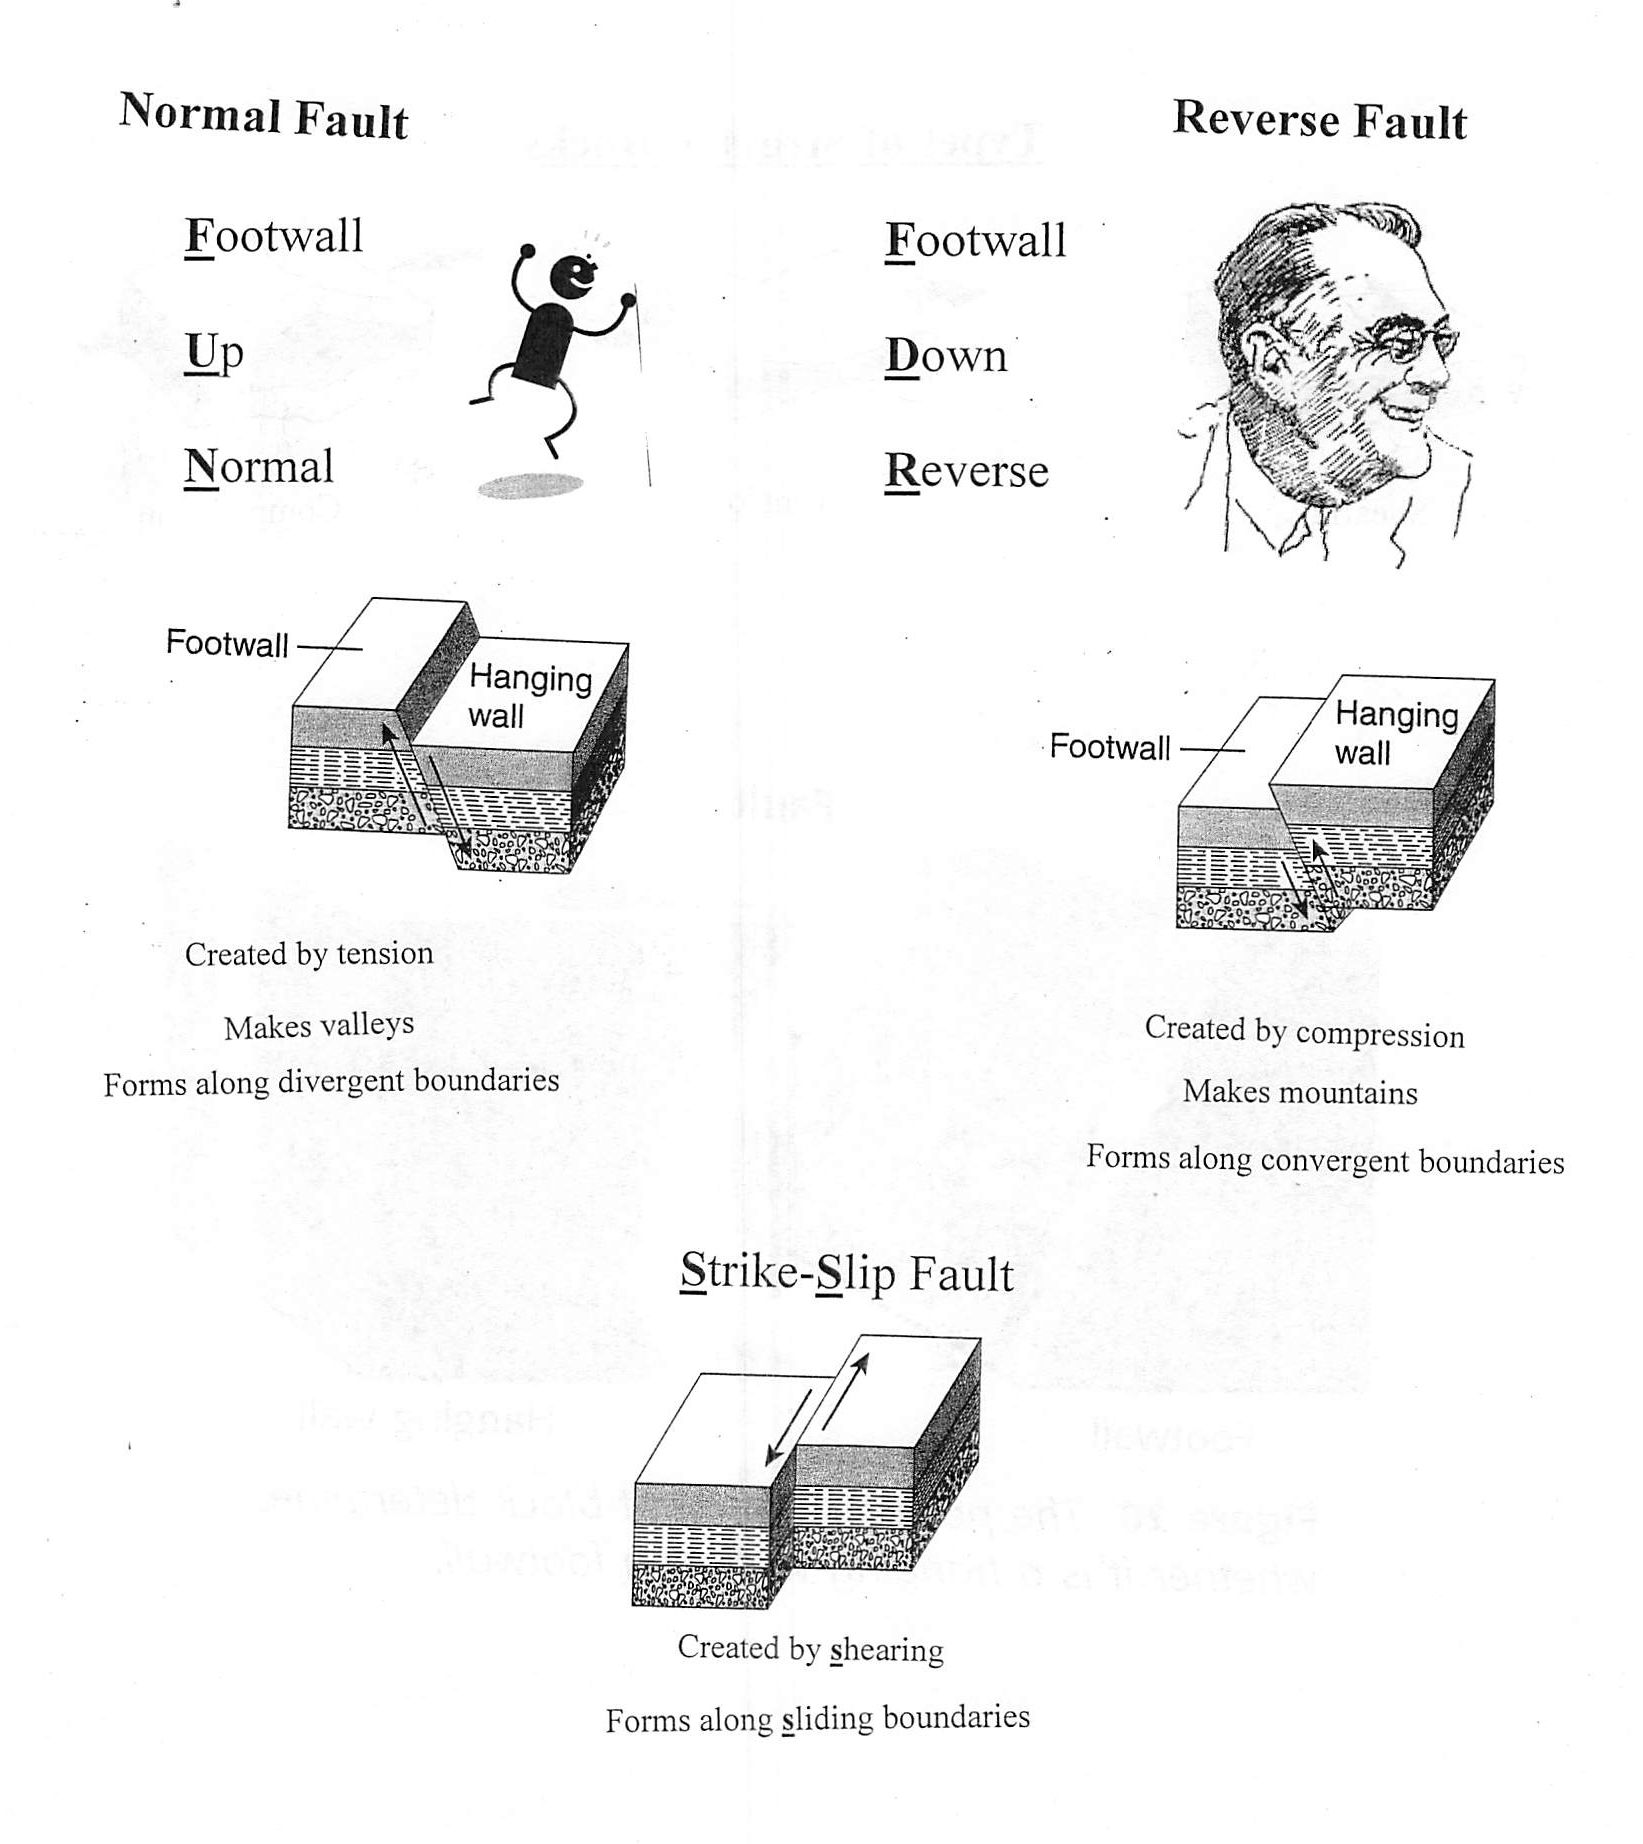 Mnemonics to remember how earthquake faults move earthquakes mnemonics to remember how earthquake faults move earthquakes fault robcynllc Choice Image